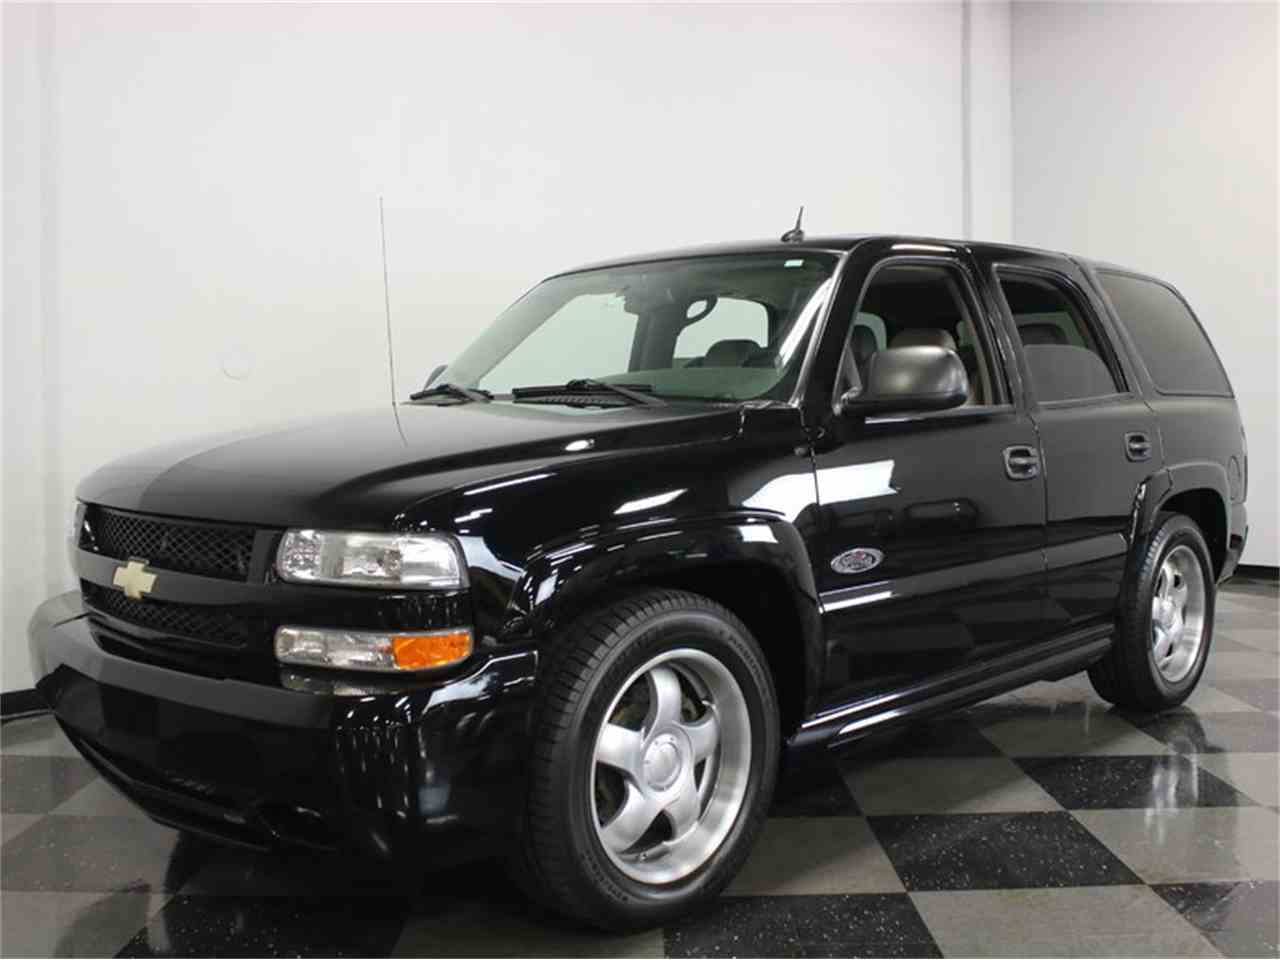 2004 Chevrolet Tahoe Joe Gibbs Limited Edition for Sale | ClassicCars.com | CC-946667